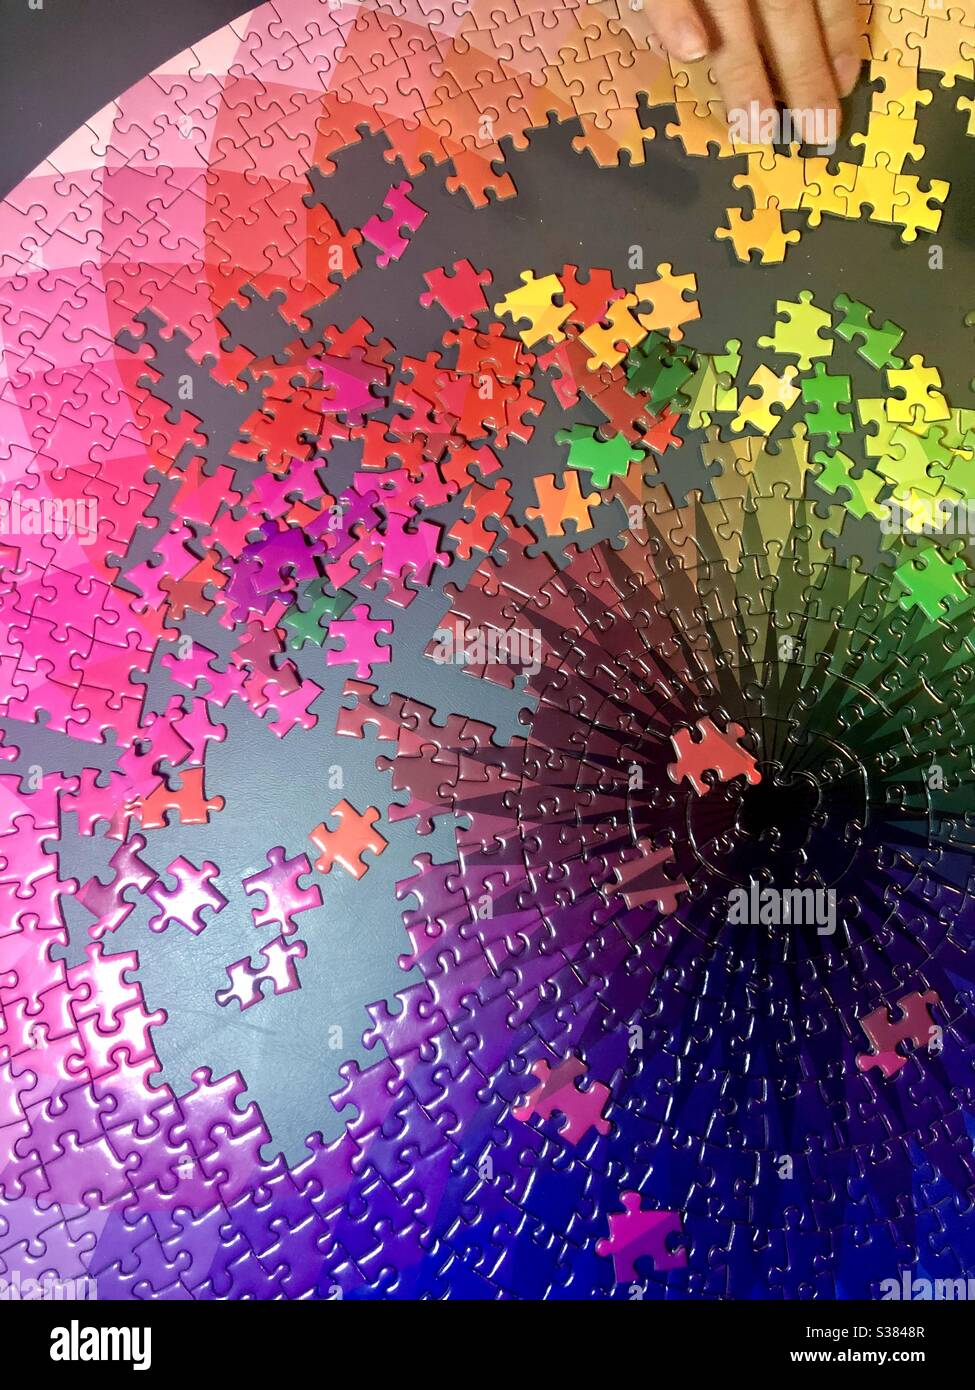 Completing a large colorful jigsaw puzzle Stock Photo